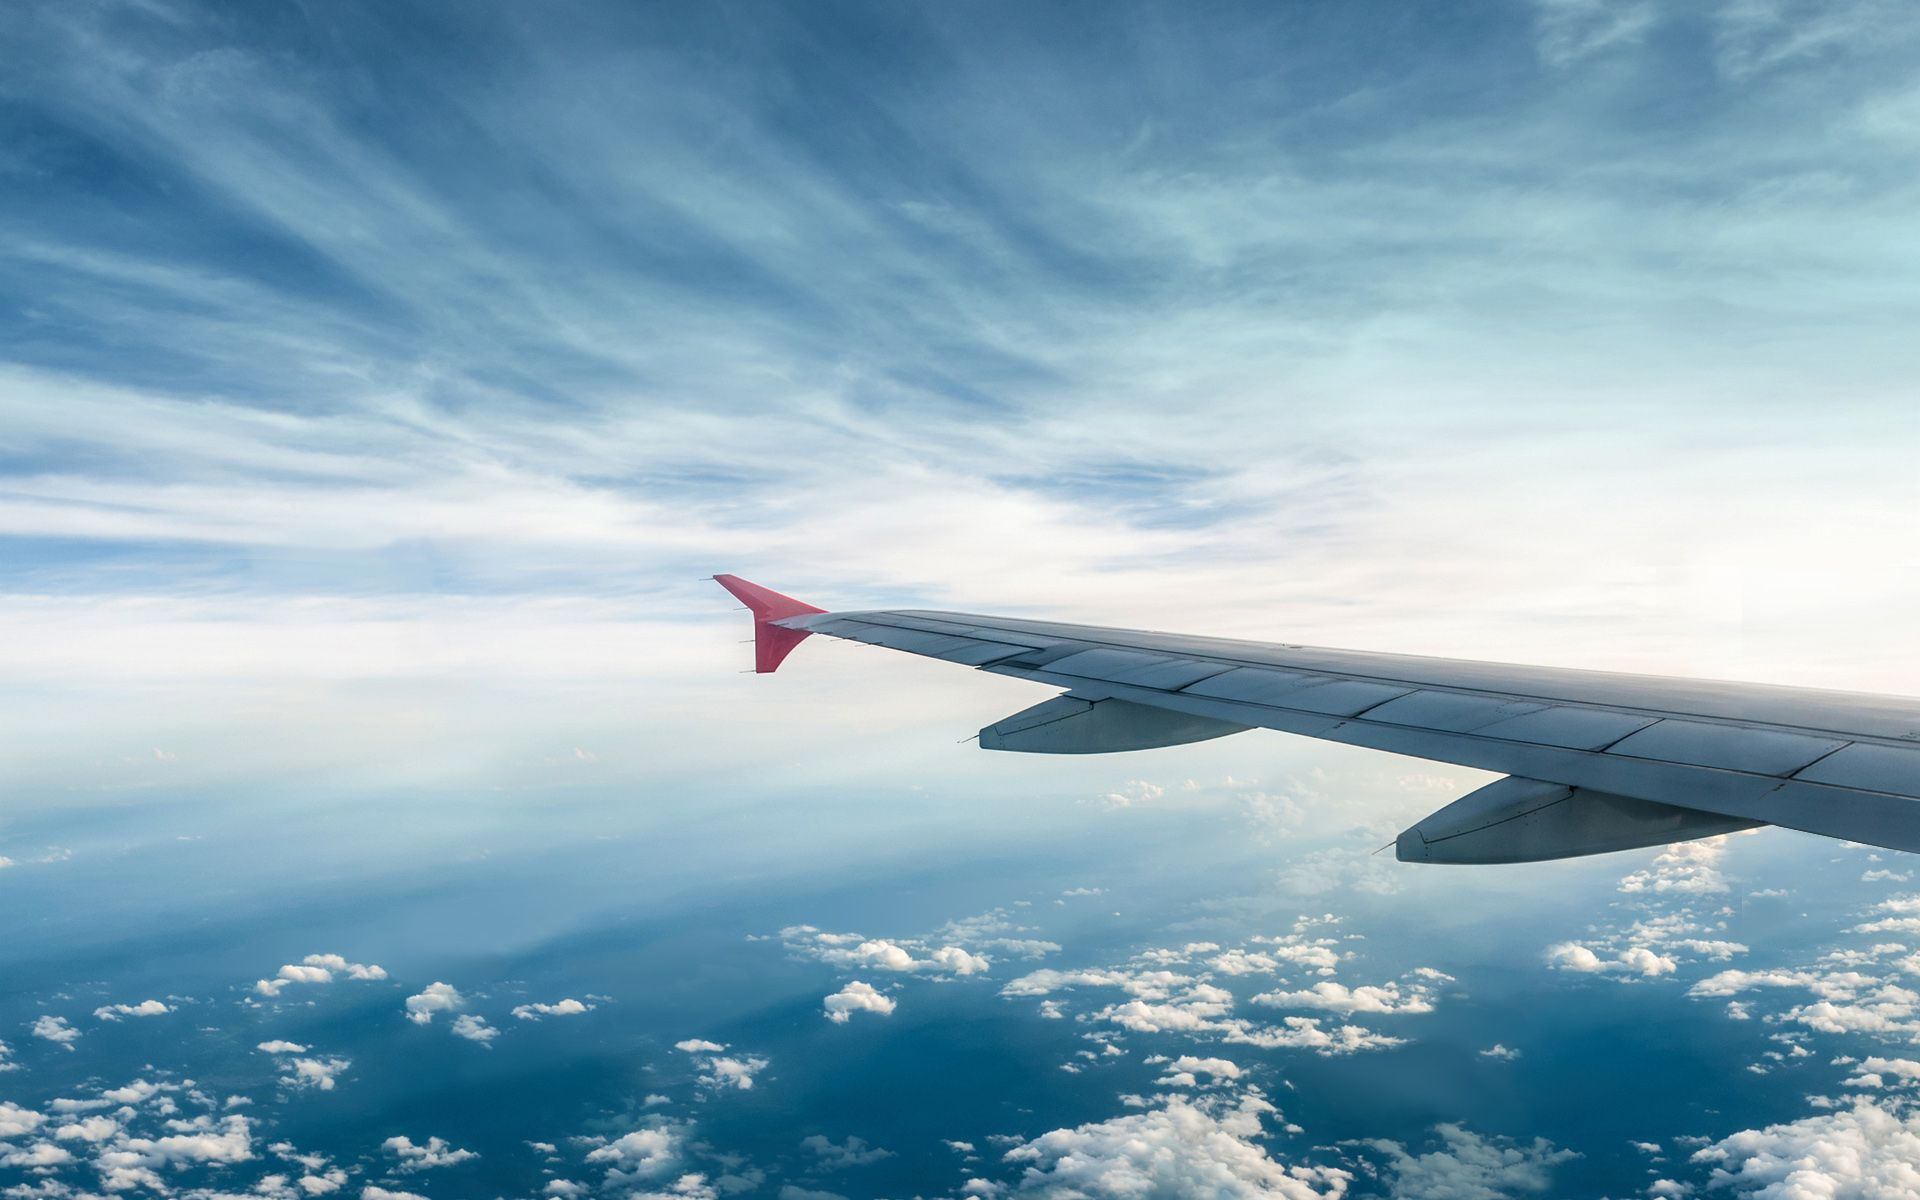 Leave On A Jet Plane With These Travel Wallpapers Aviaciya